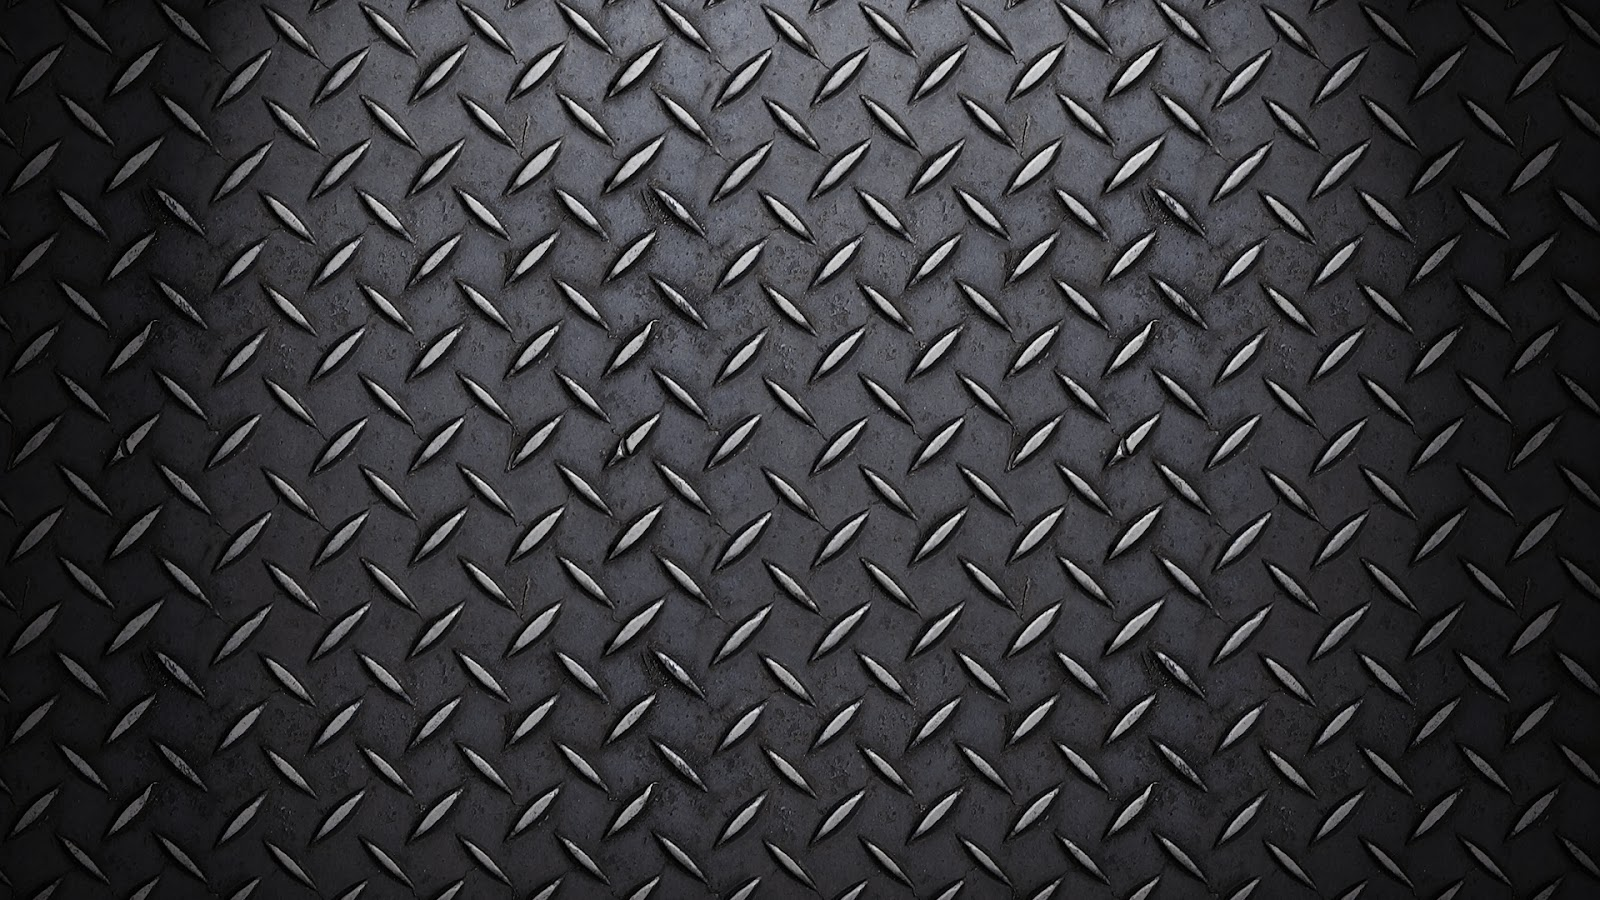 18 Black Texture Background PSD Images